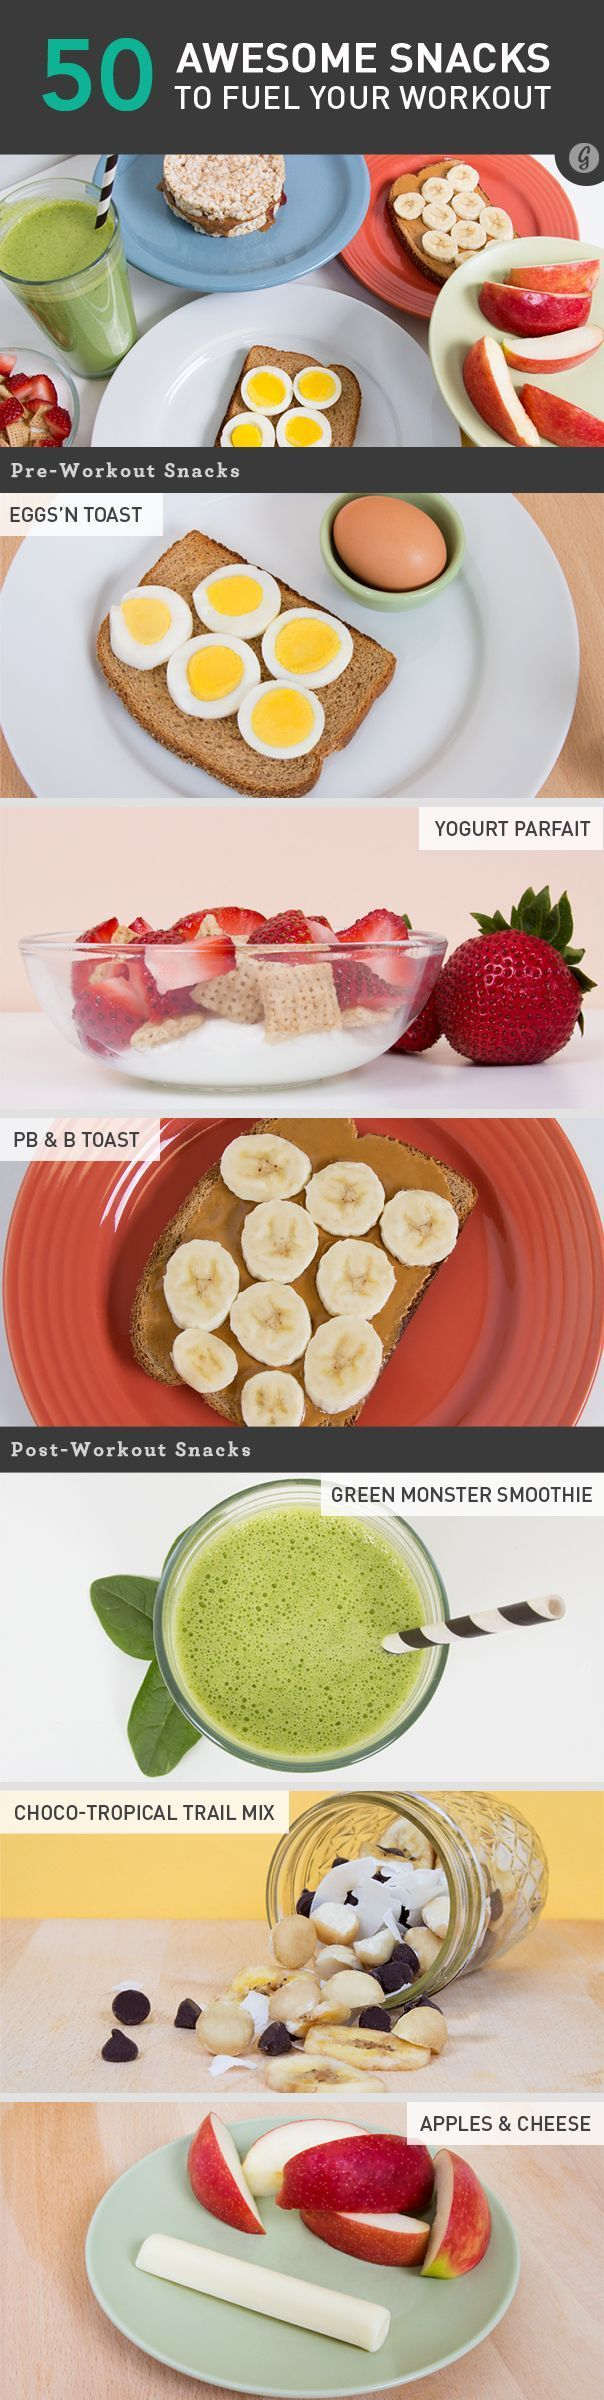 50 Awesome Pre- and Post-Workout Snacks #workout #snacks